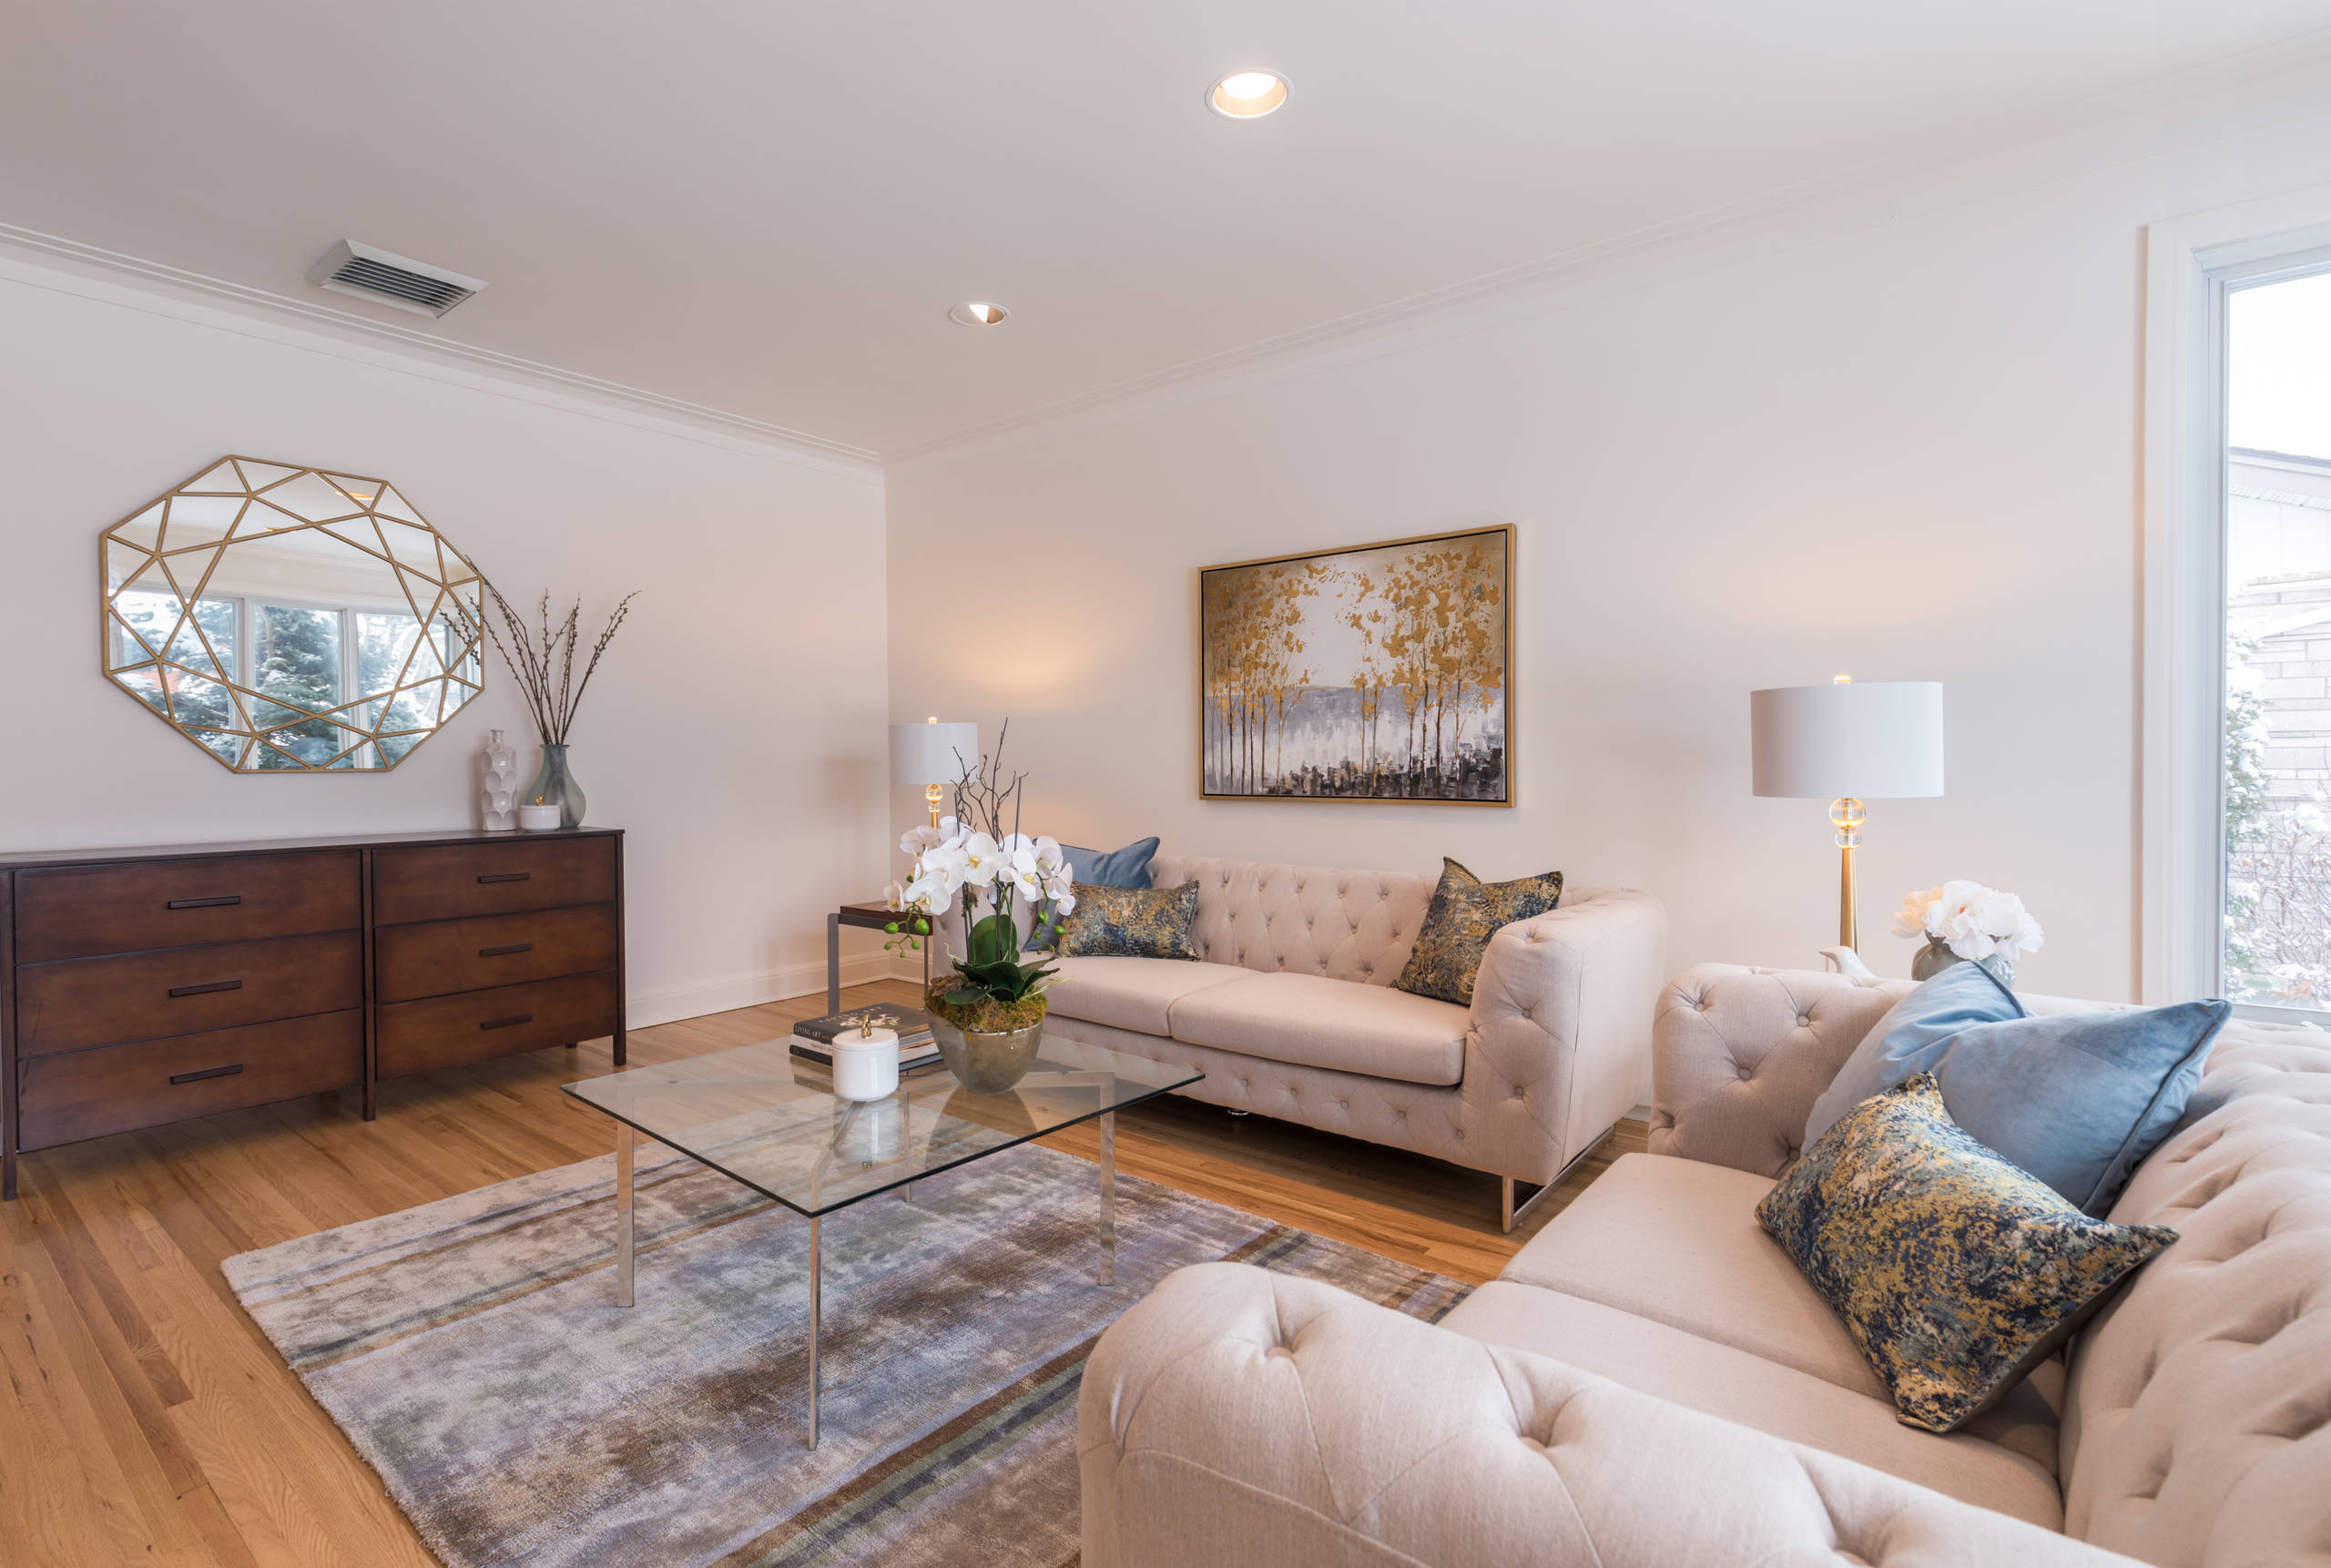 TMR Family Home - Cosmetic Updates and Staging to Sell